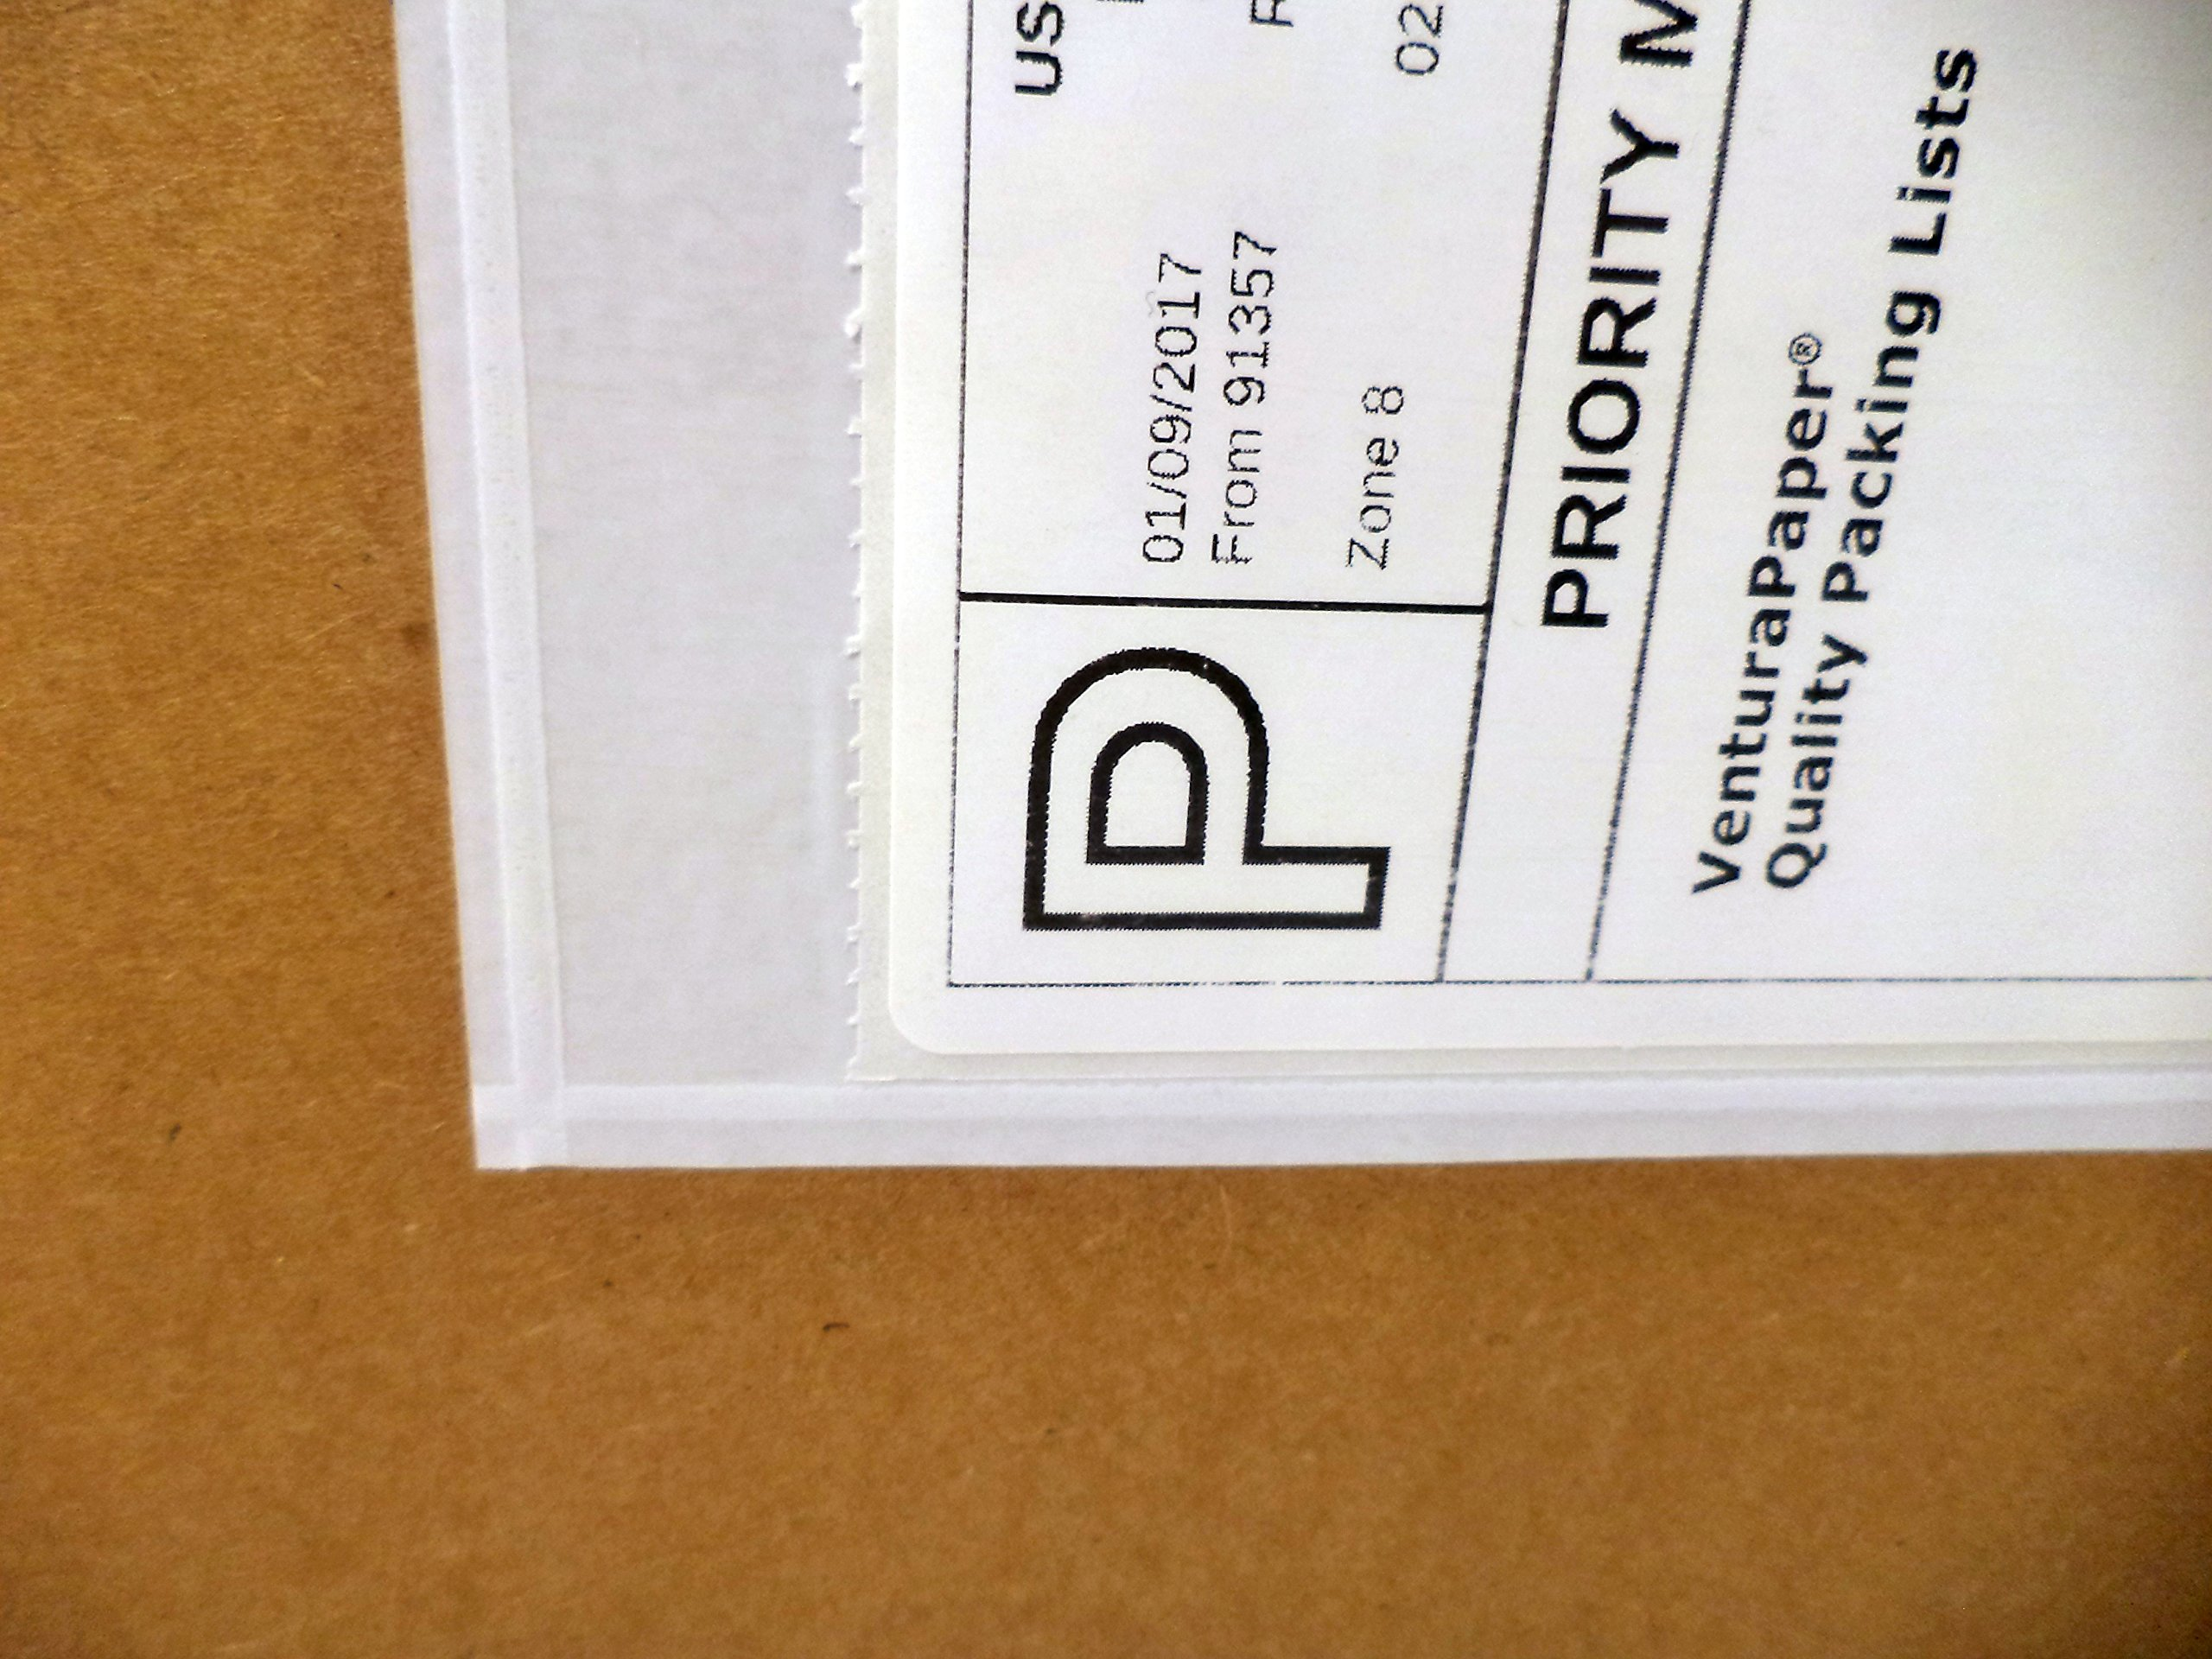 Ventura Paper 7.5'' x 5.5'' Clear Adhesive Top Loading Packing List / Shipping Label Envelopes (300 Pieces)